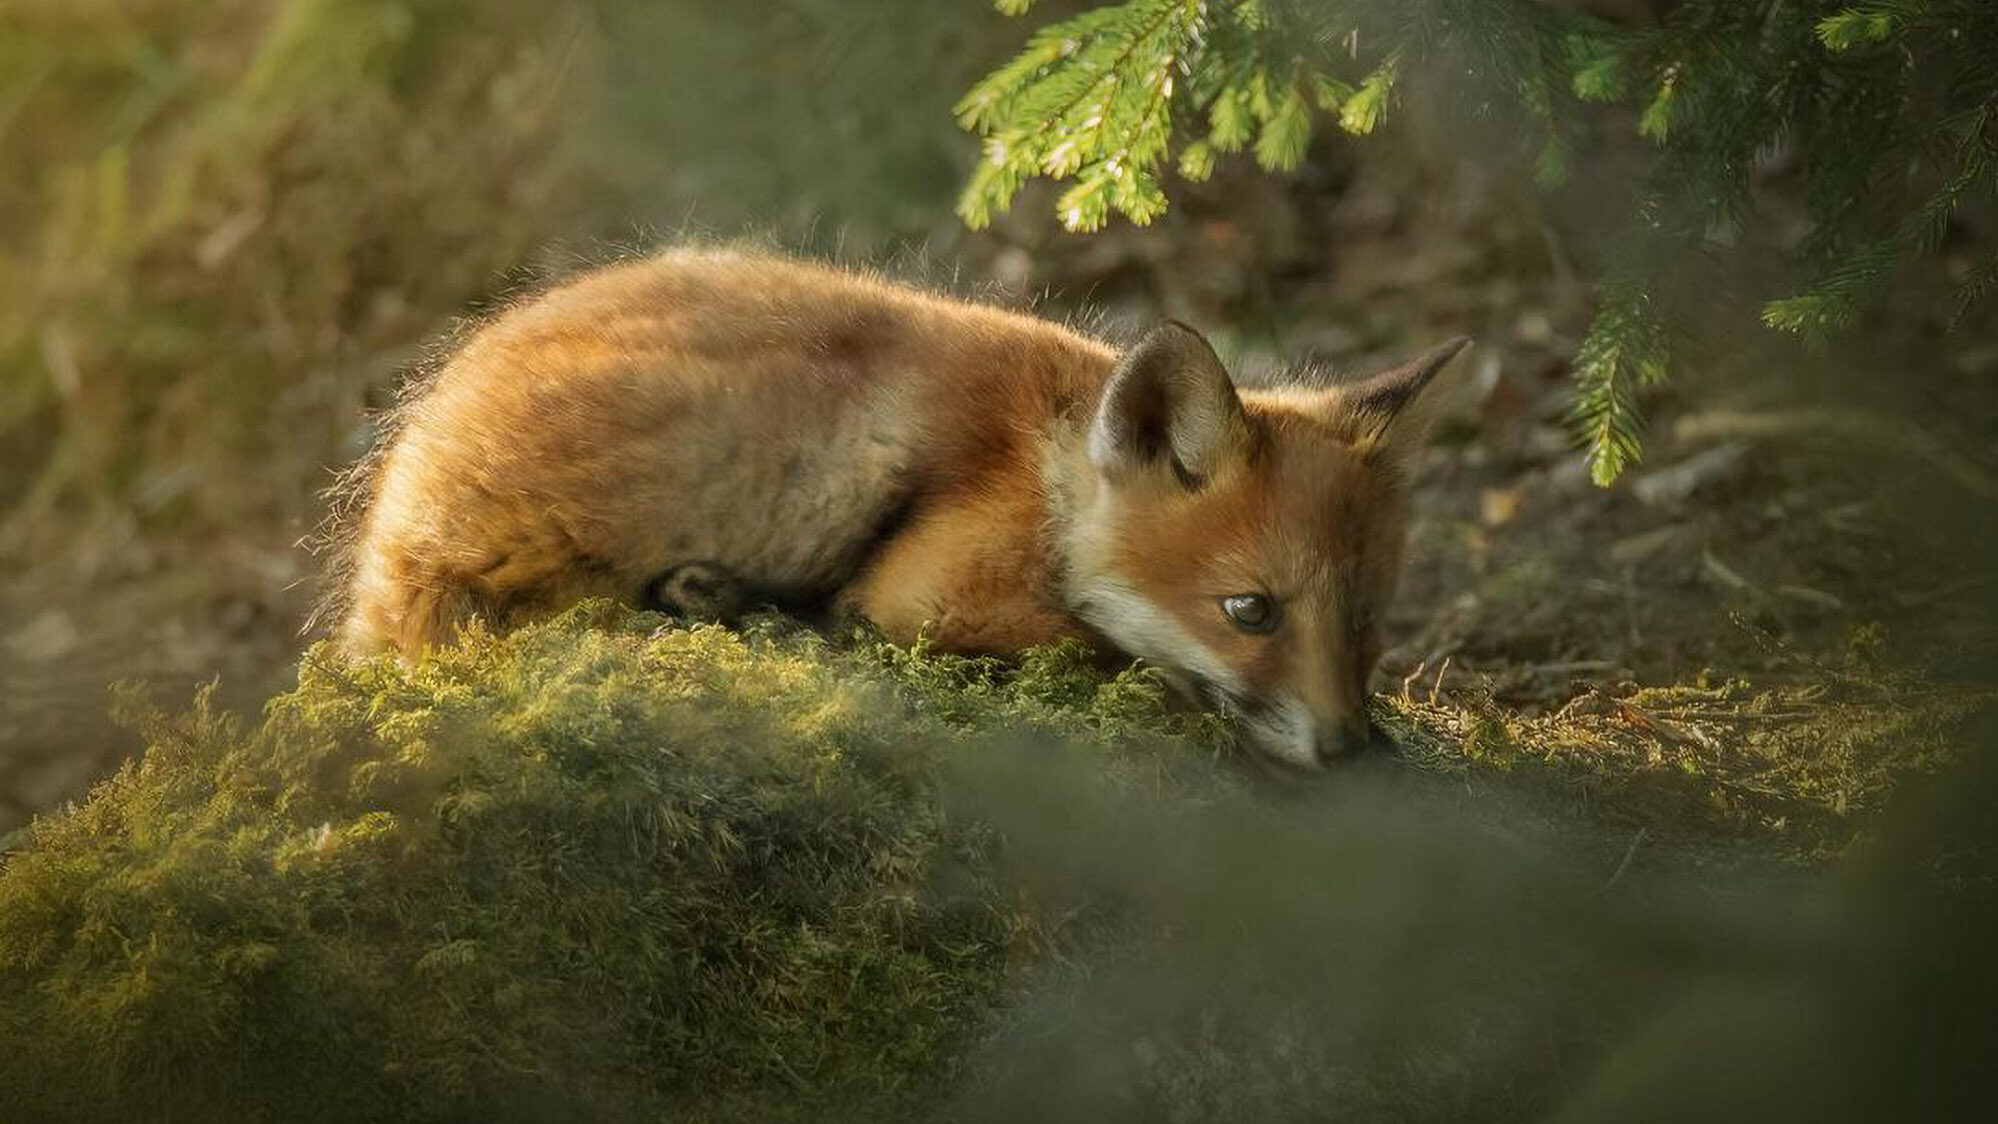 VIDEO: Eye For Nature: Photographer Captures Elusive Wildlife In Stunning Images